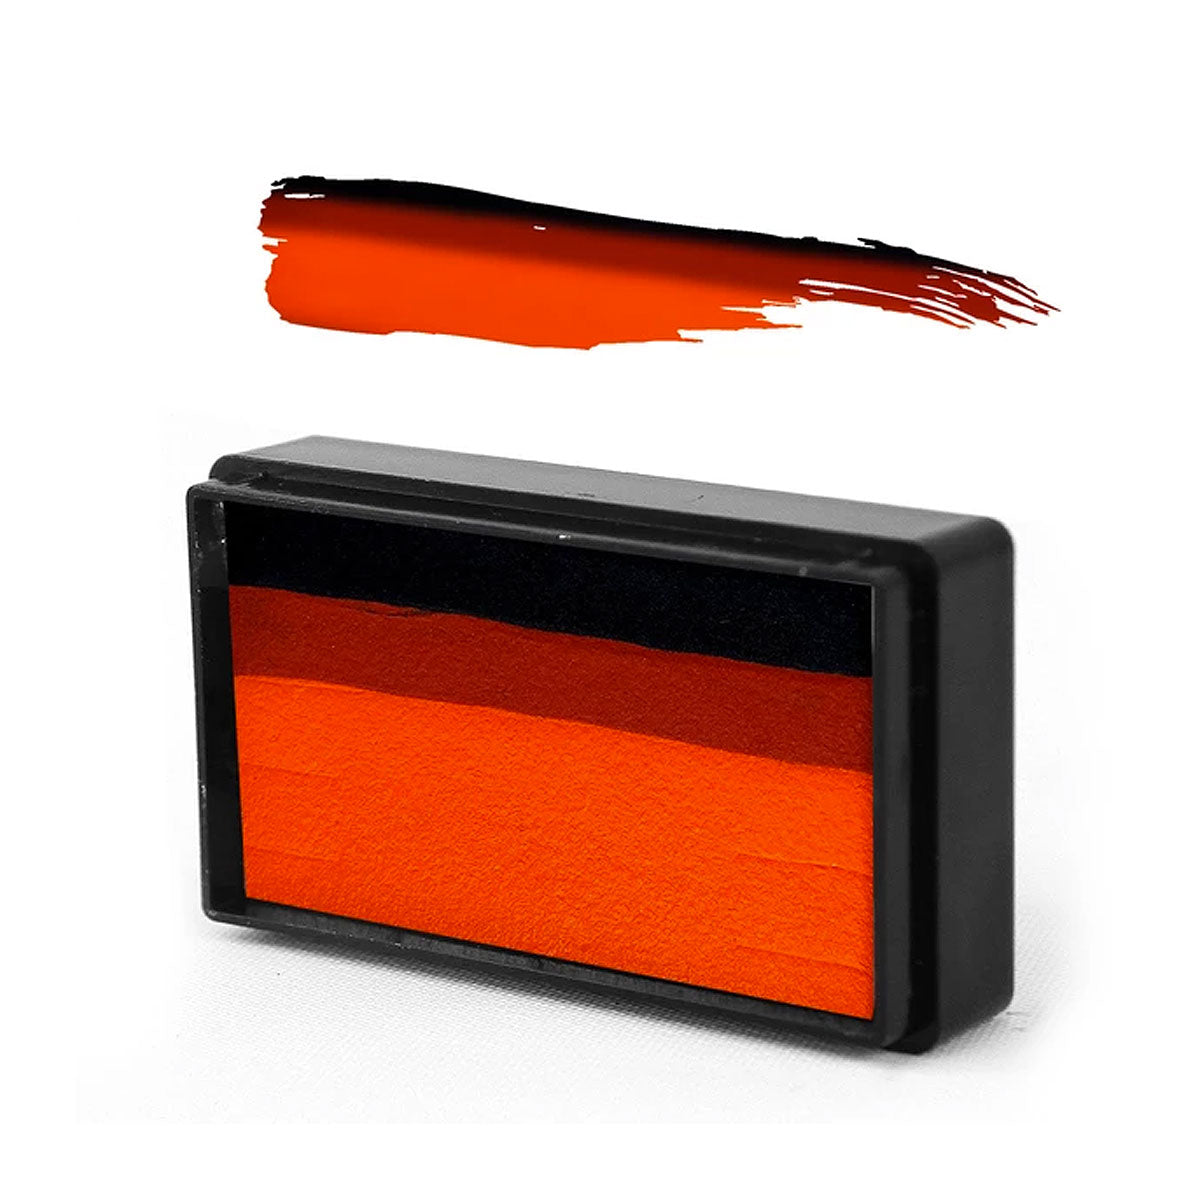 Pumpkin Orange Arty Brush Cake - Susy Amaro's EZ Stroke Collection